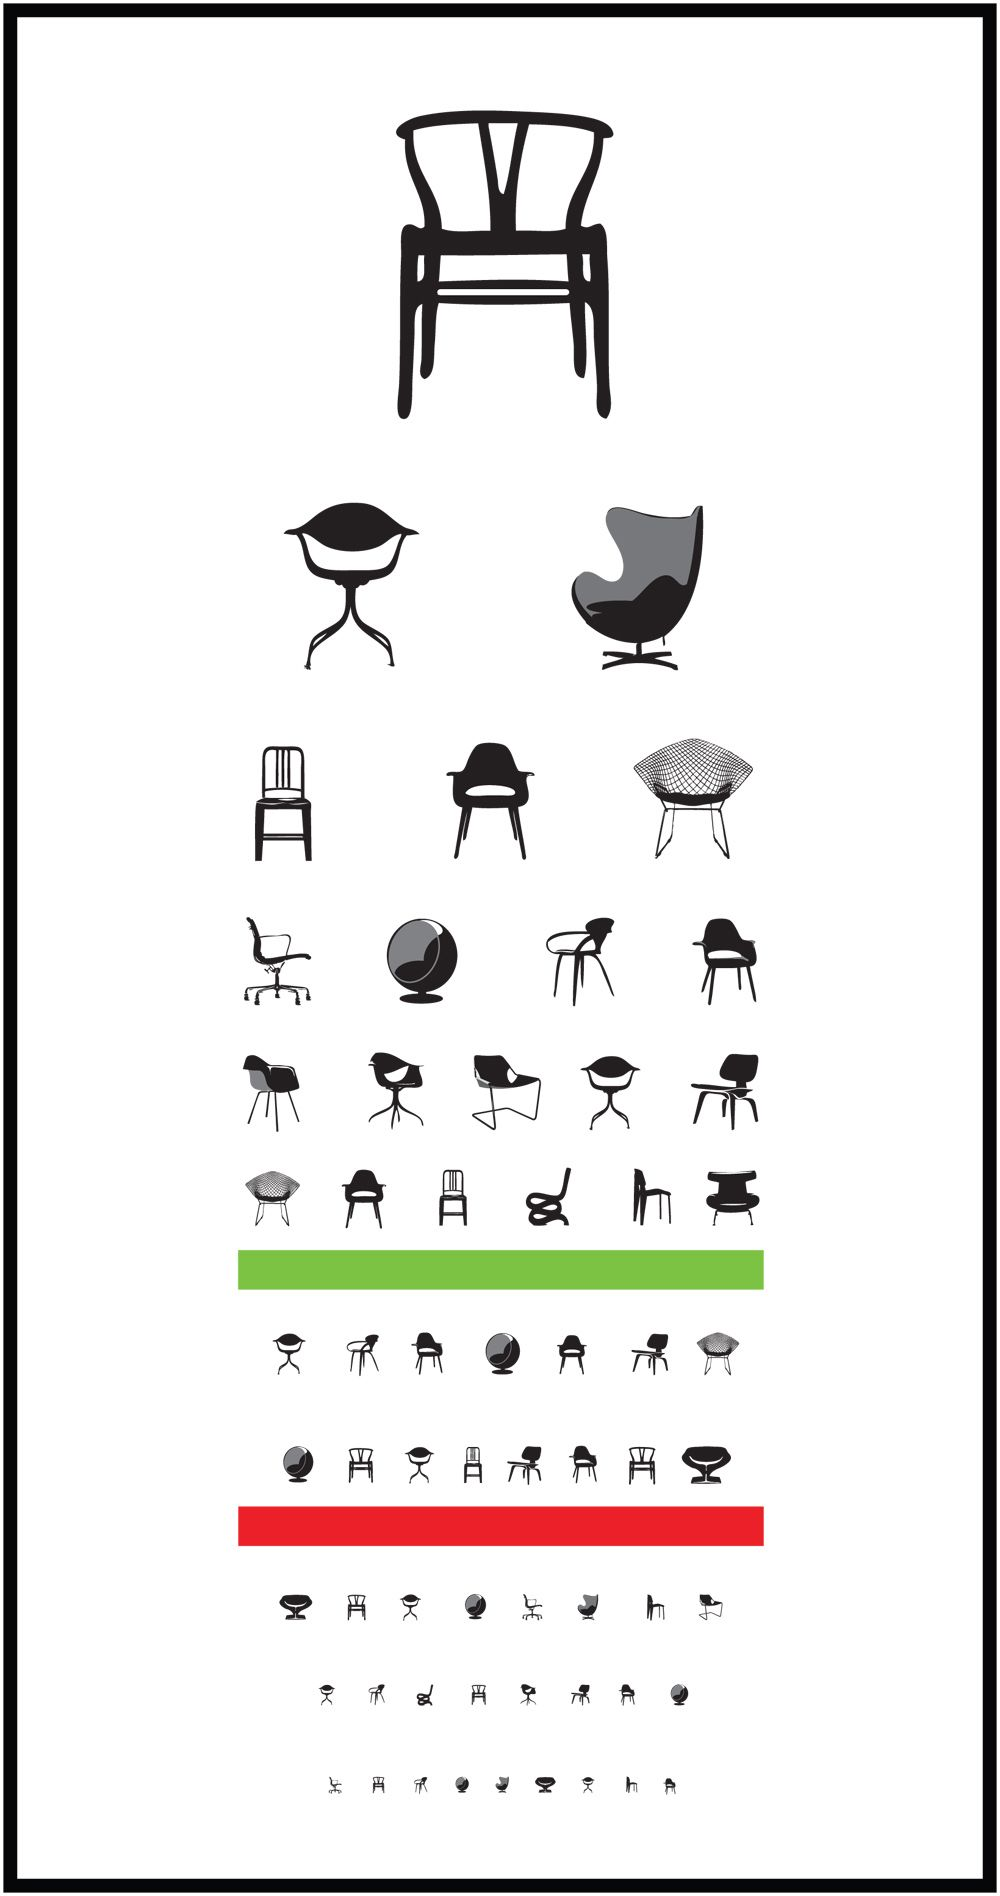 Furniture Design History wanted: an eyesight chart that's also a mid-century design quiz